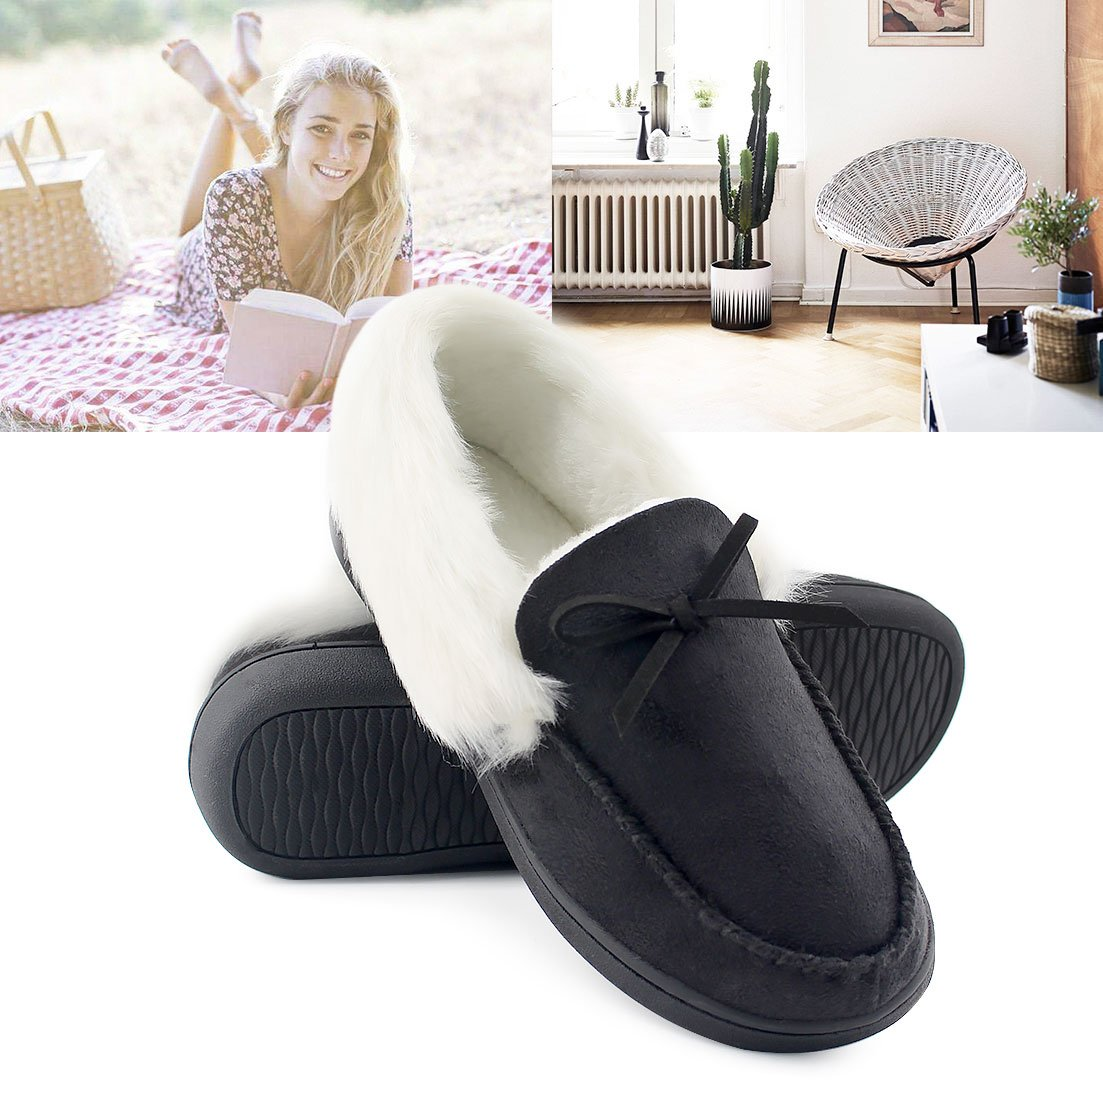 HomeIdeas Women's Faux Fur Lined Suede House Slippers, Breathable Indoor Outdoor Moccasins (7 B(M) US, Black) by HomeIdeas (Image #5)